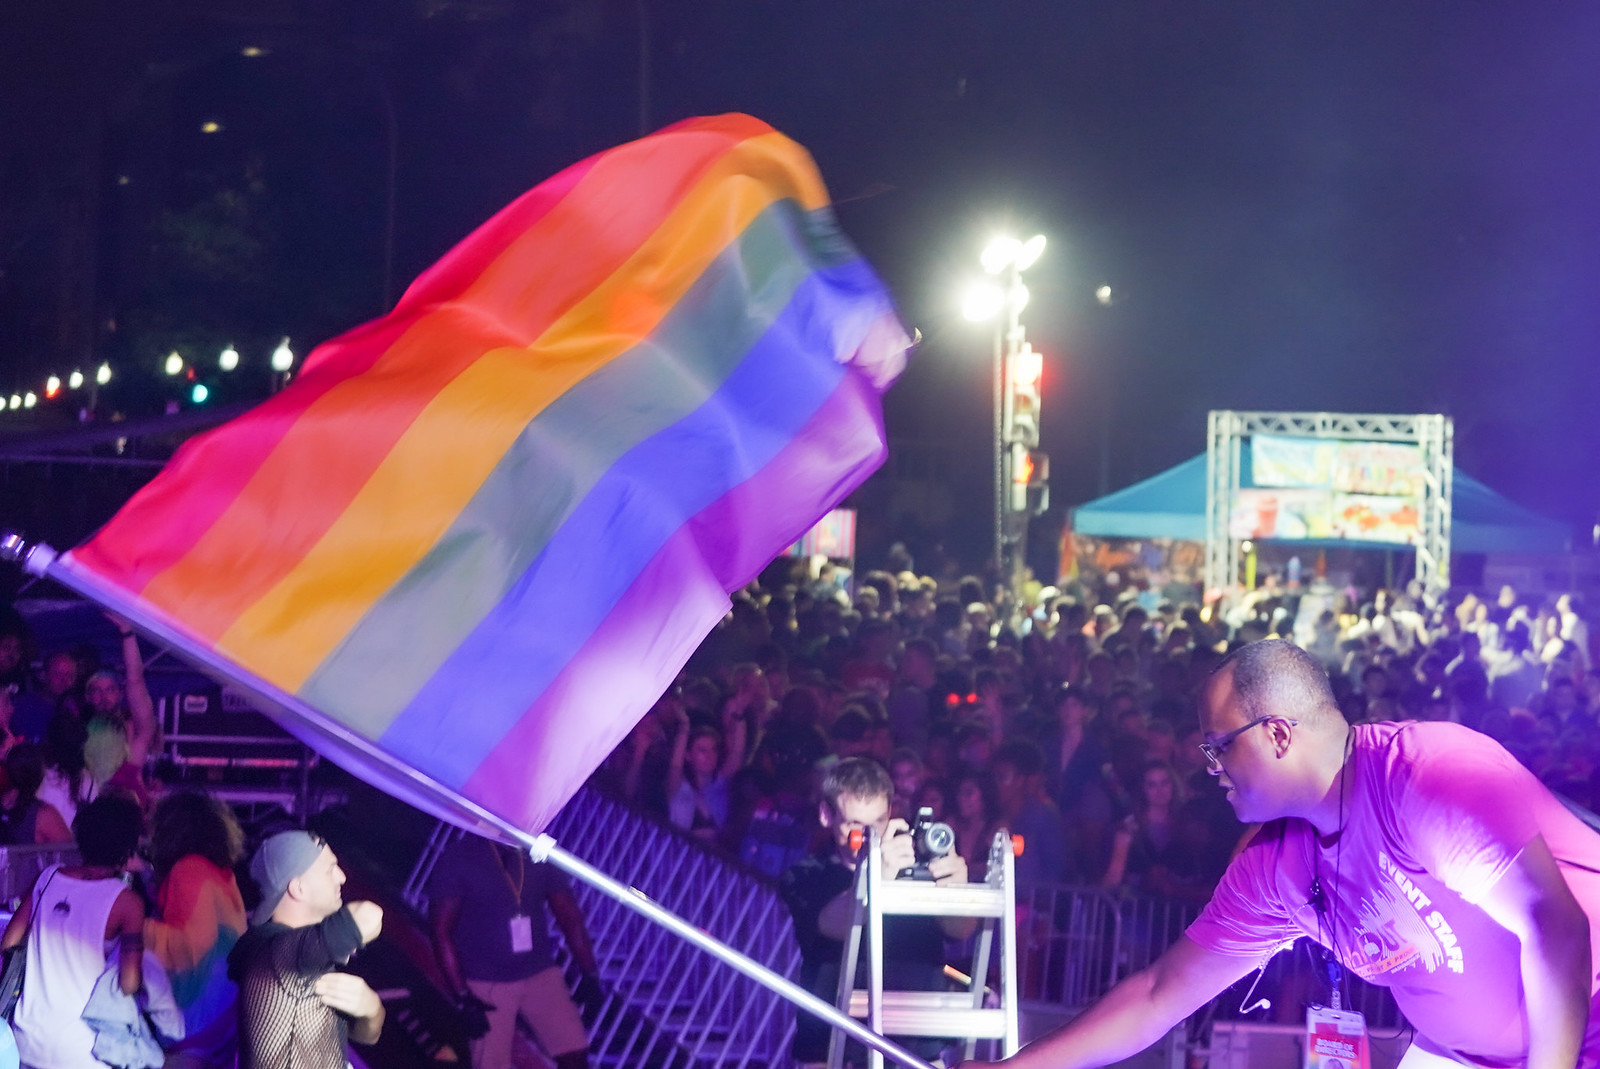 2019.06.09 Capital Pride Festival and Concert, Washington, DC USA 1600256